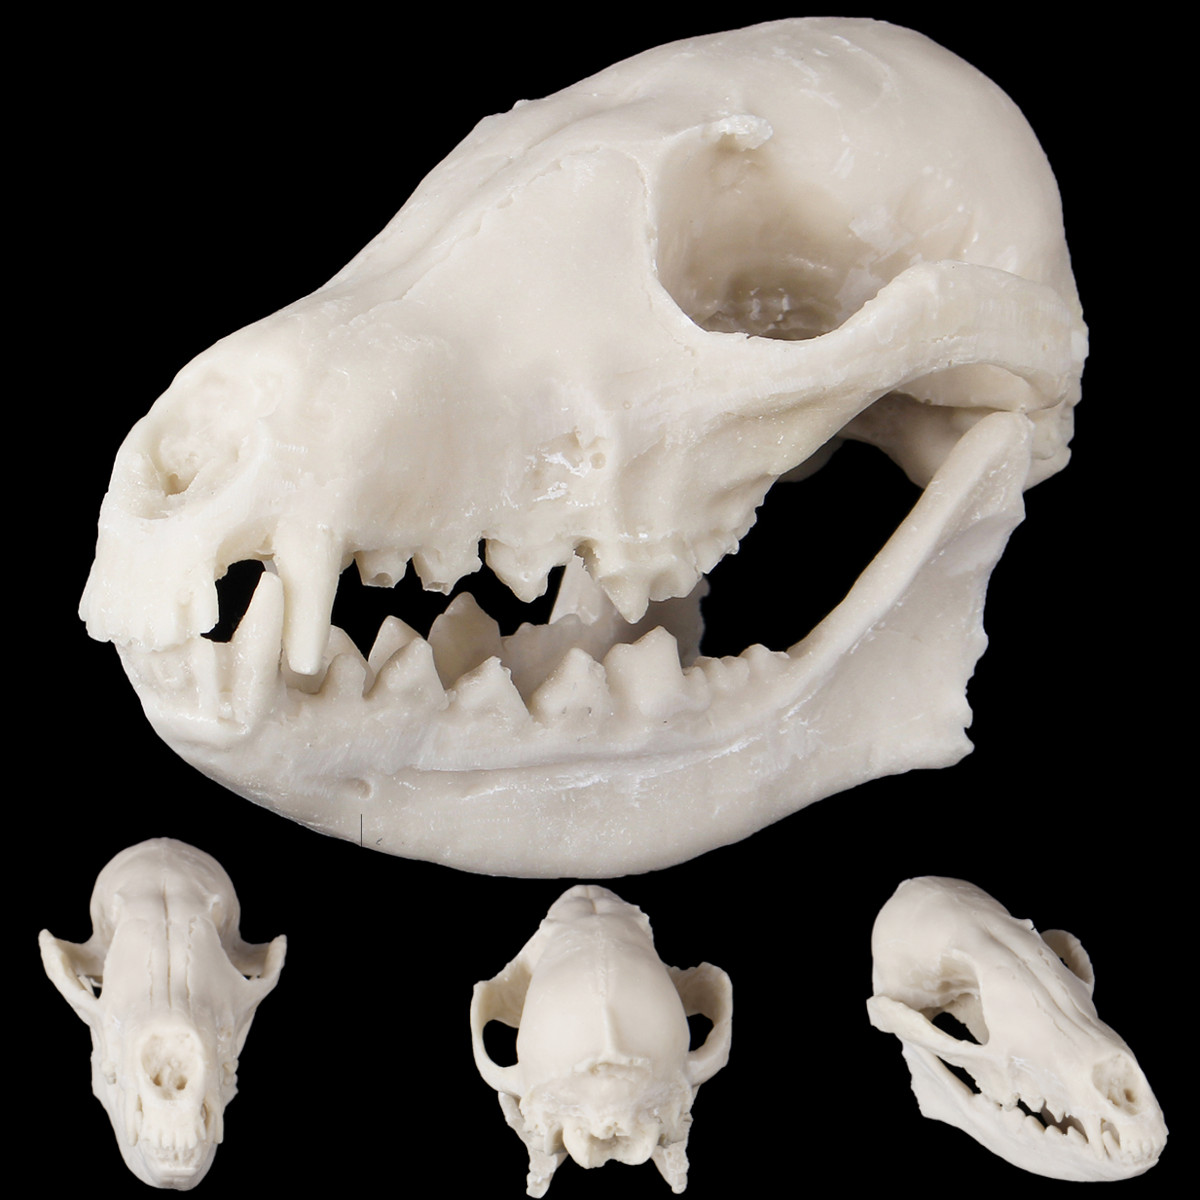 Fox Skull Resin Animal Bone Model Collectibles Crafts Home Room Decorations Christmas Gift